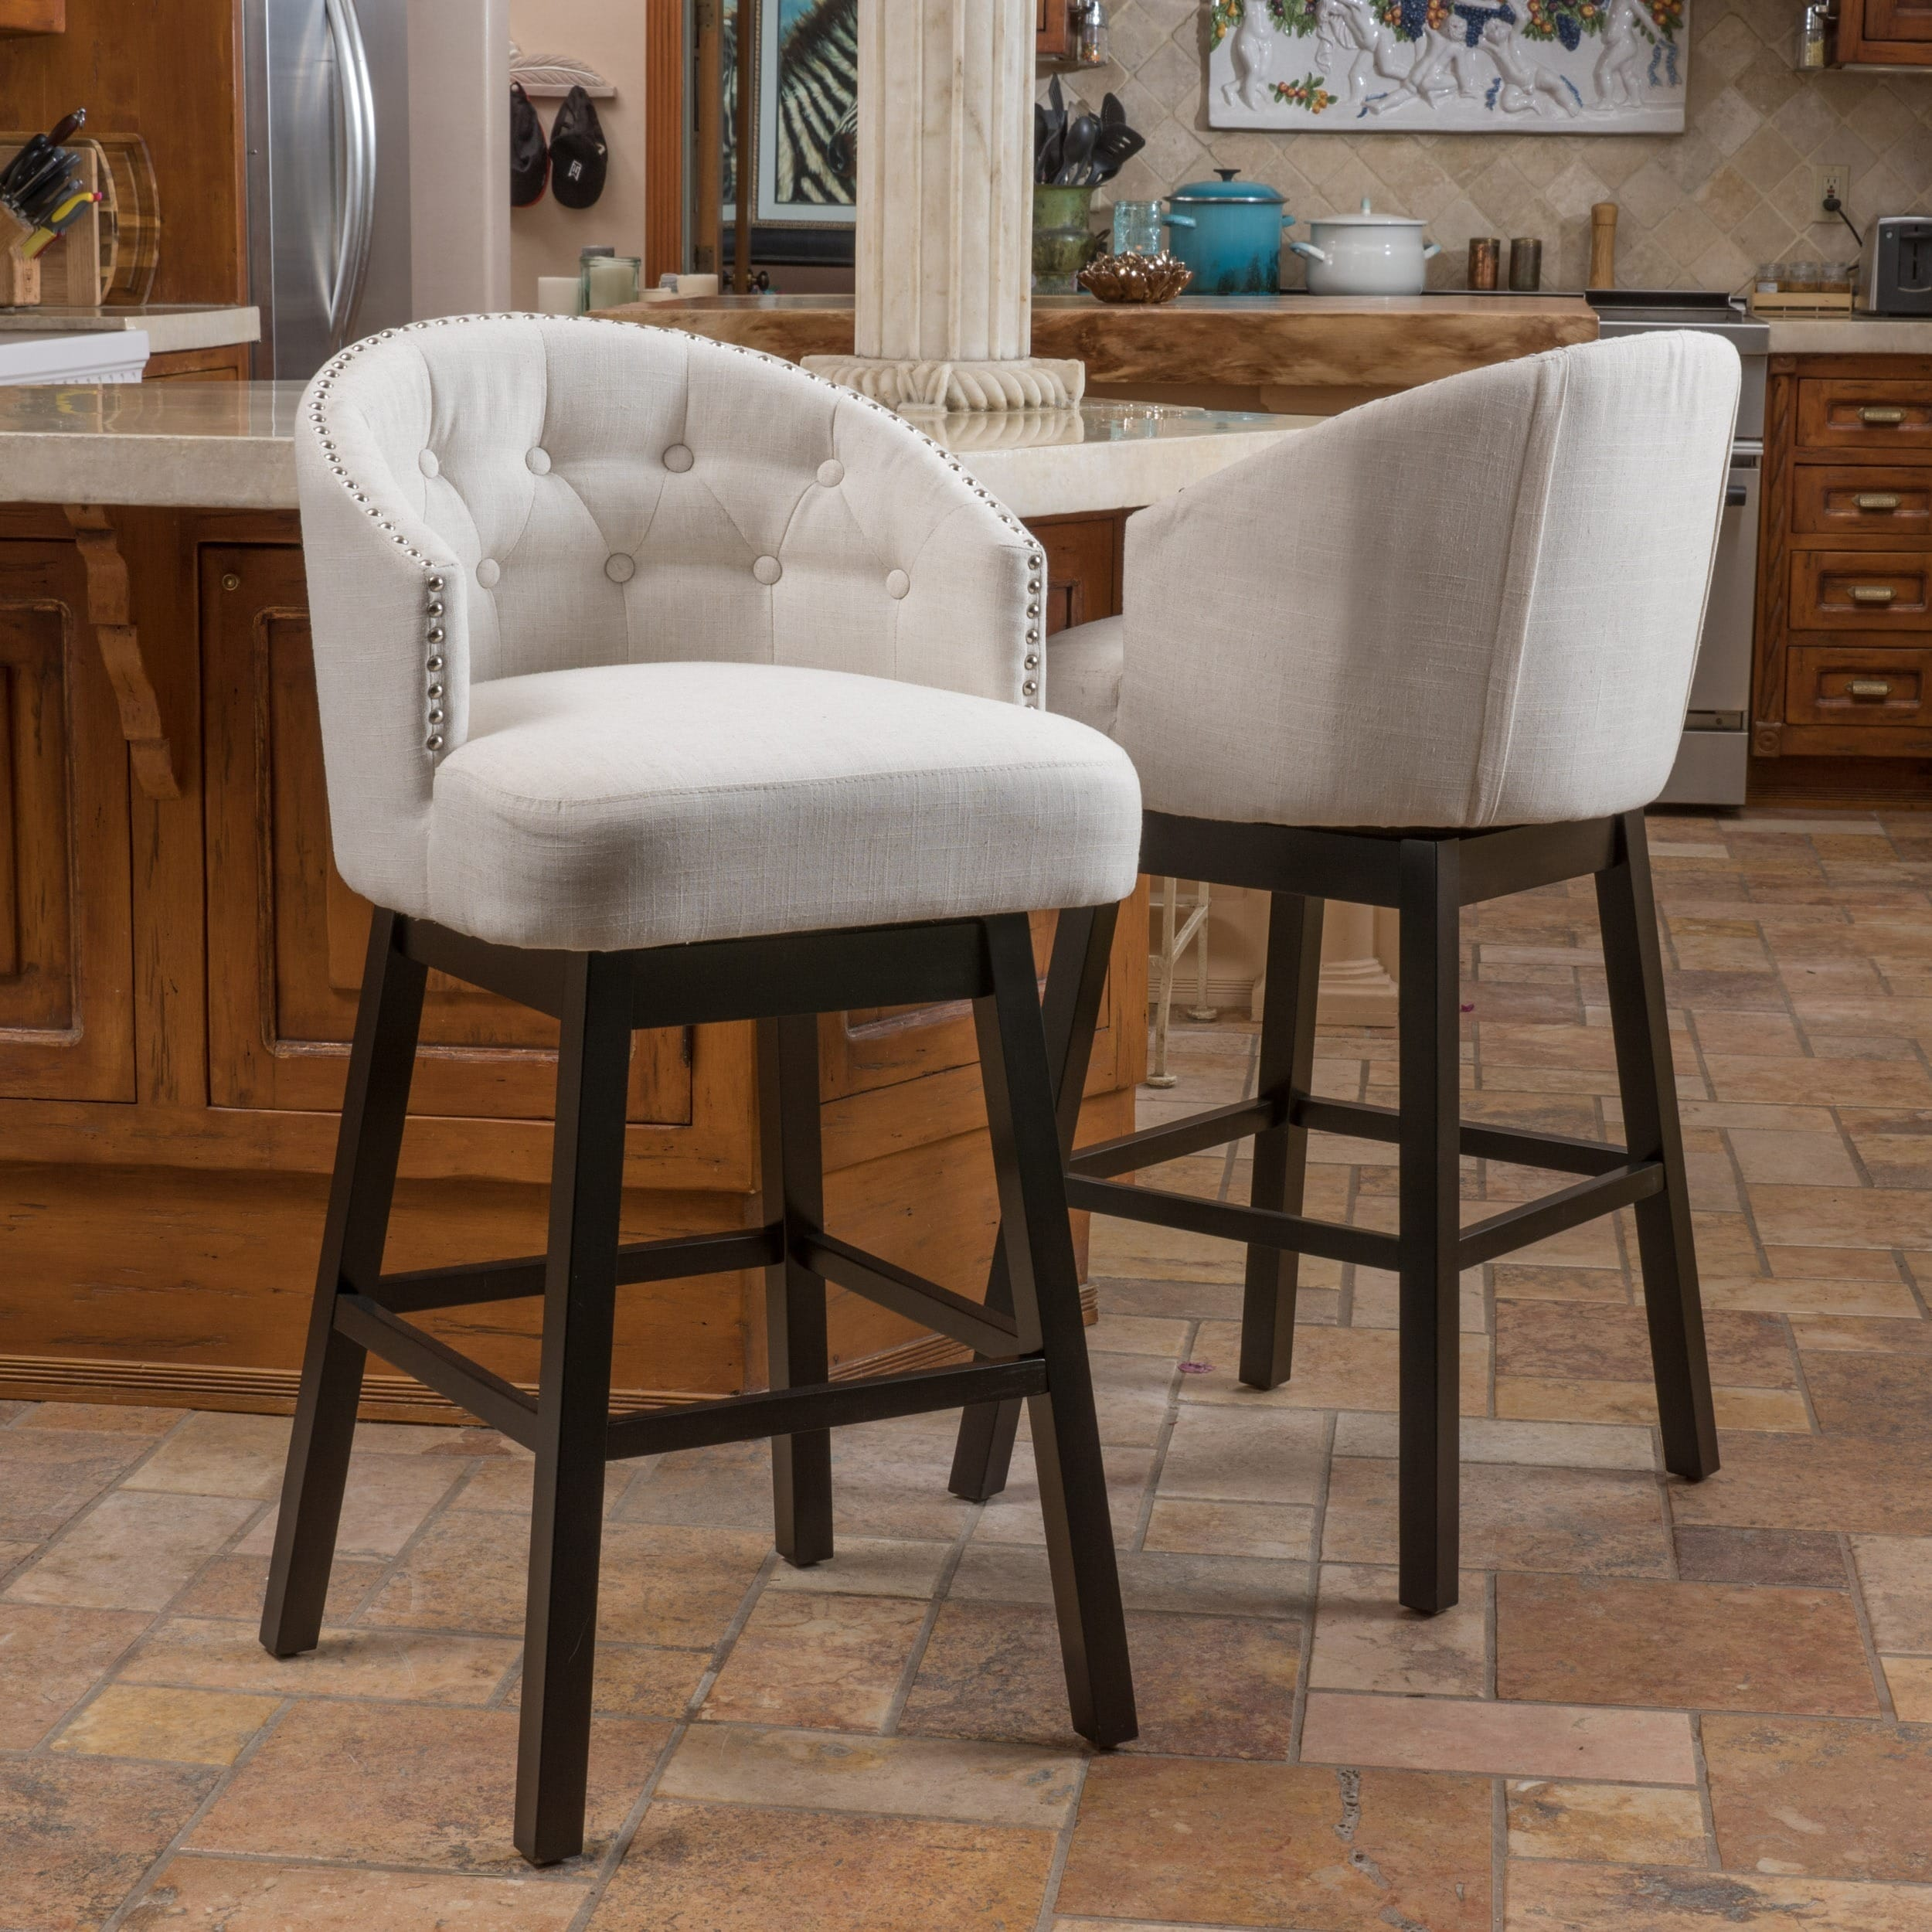 Ogden 29 Inch Fabric Swivel Backed Barstool Set Of 2 By Christopher Knight Home On Free Shipping Today 10391542